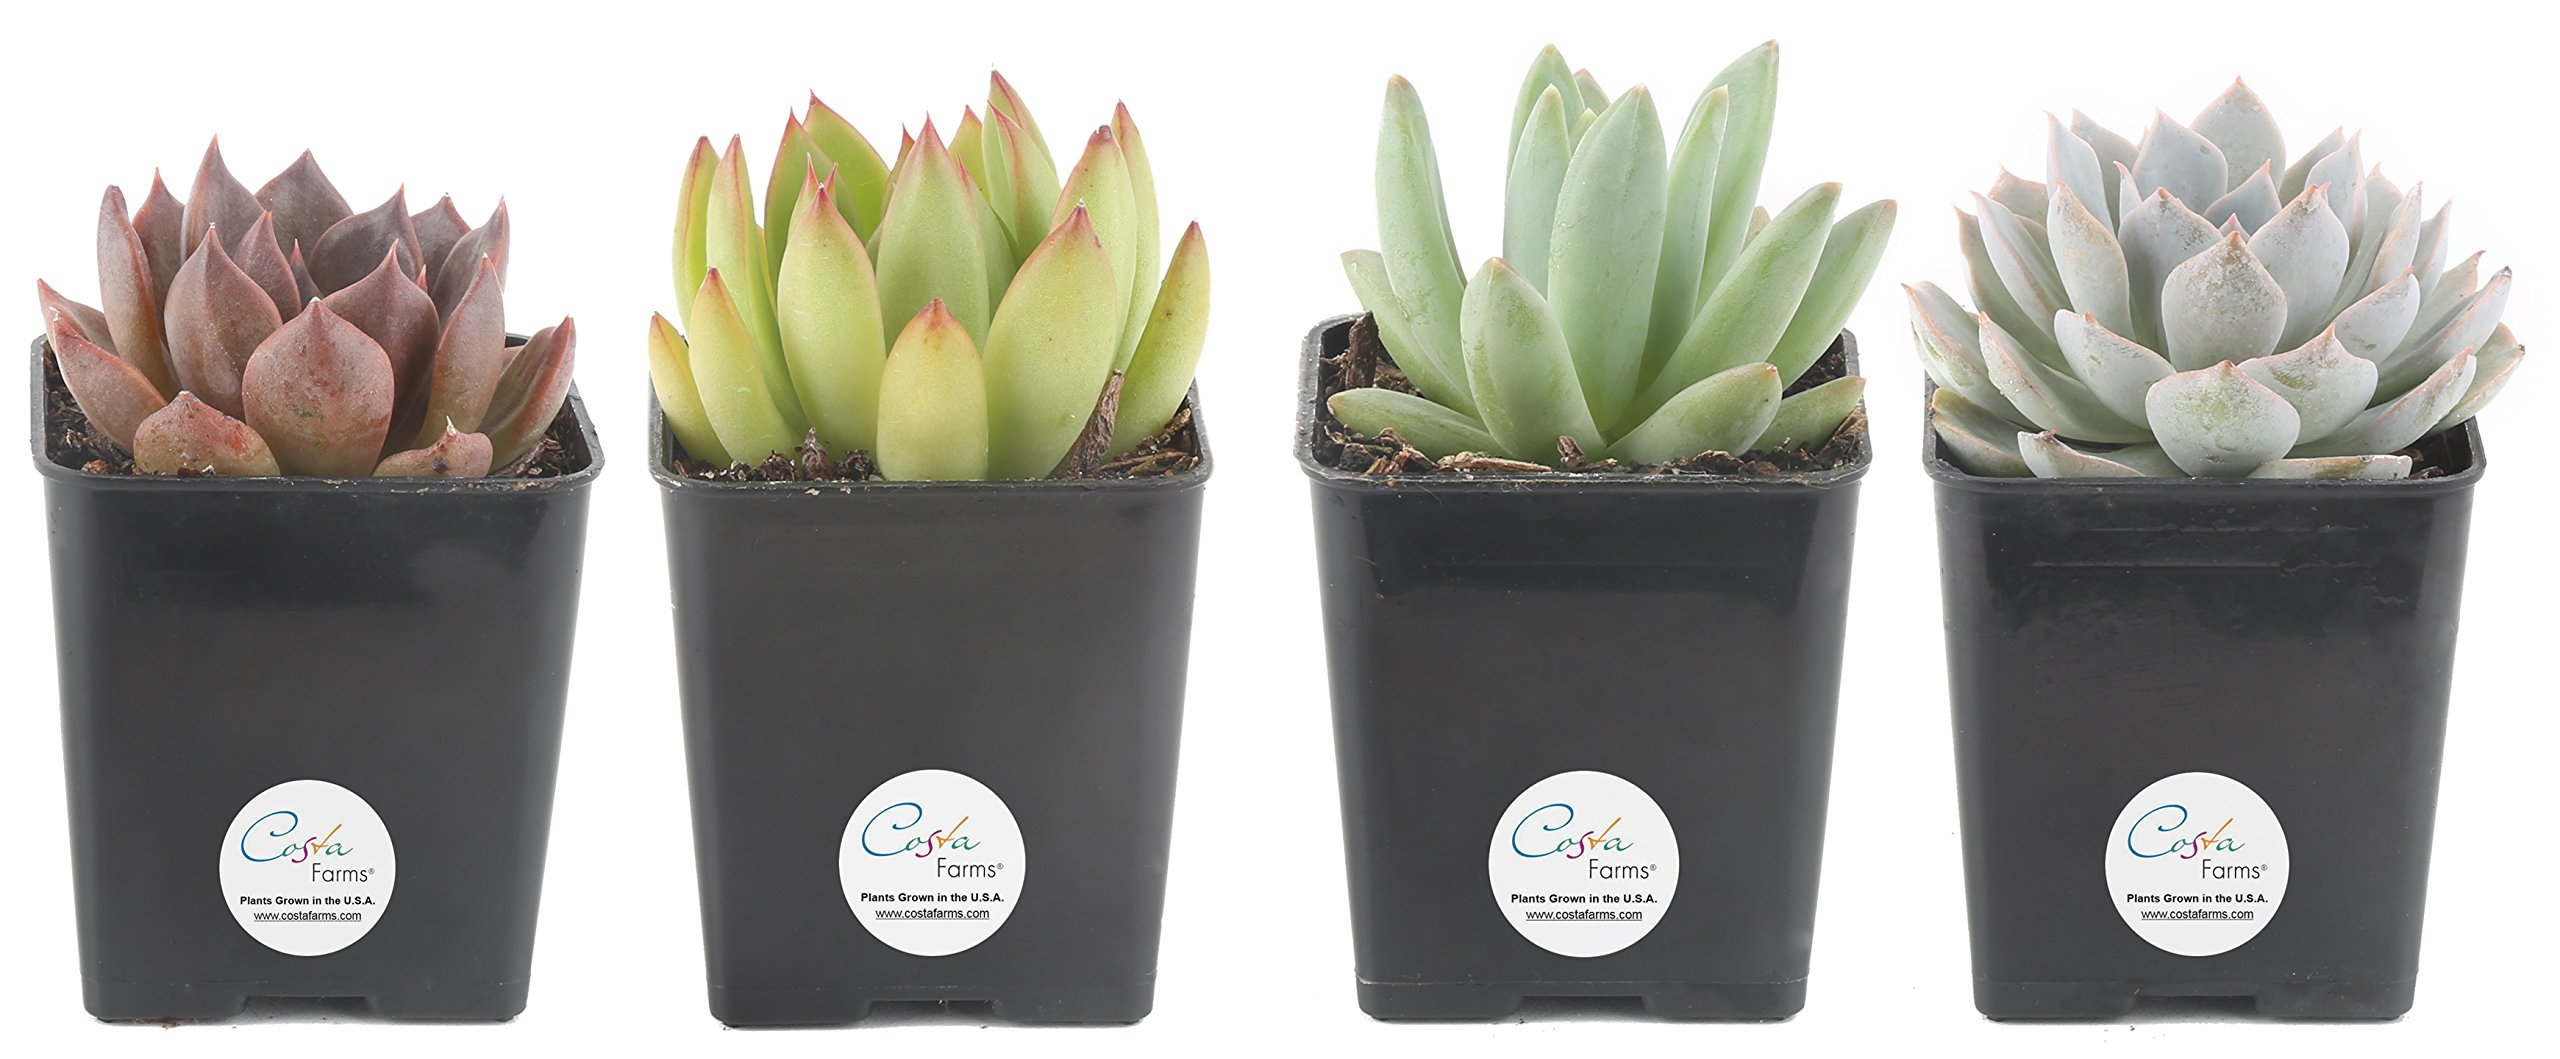 Costa Farms Premium Live Jumbo Mini Echeveria Succulent Plant, Set of 4, Grower Choice Assortment, Fully Rooted, Ships in 2.5-Inch Grower Pot, Fresh from Our Farm